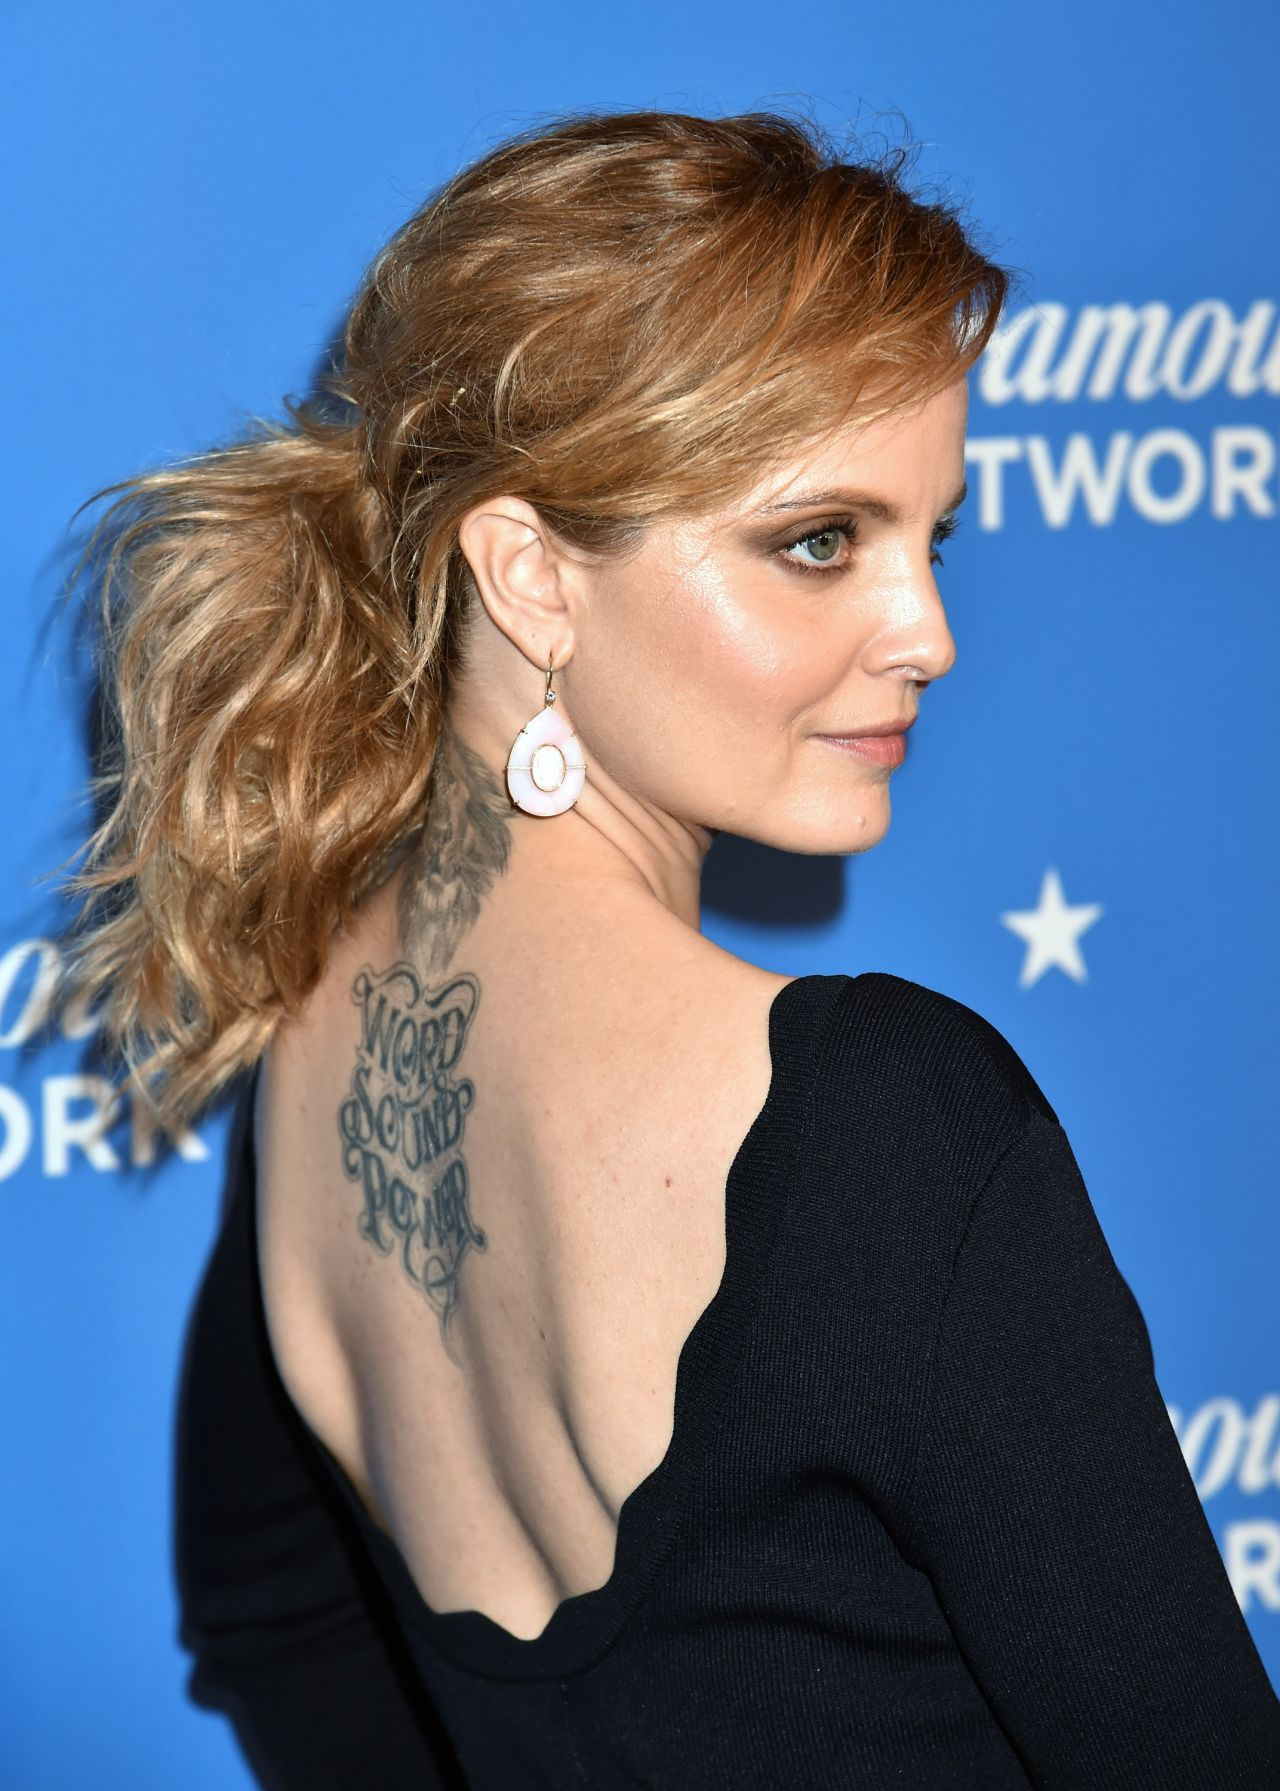 http://celebmafia.com/wp-content/uploads/2018/01/mena-suvari-paramount-network-launch-party-in-la-3.jpg